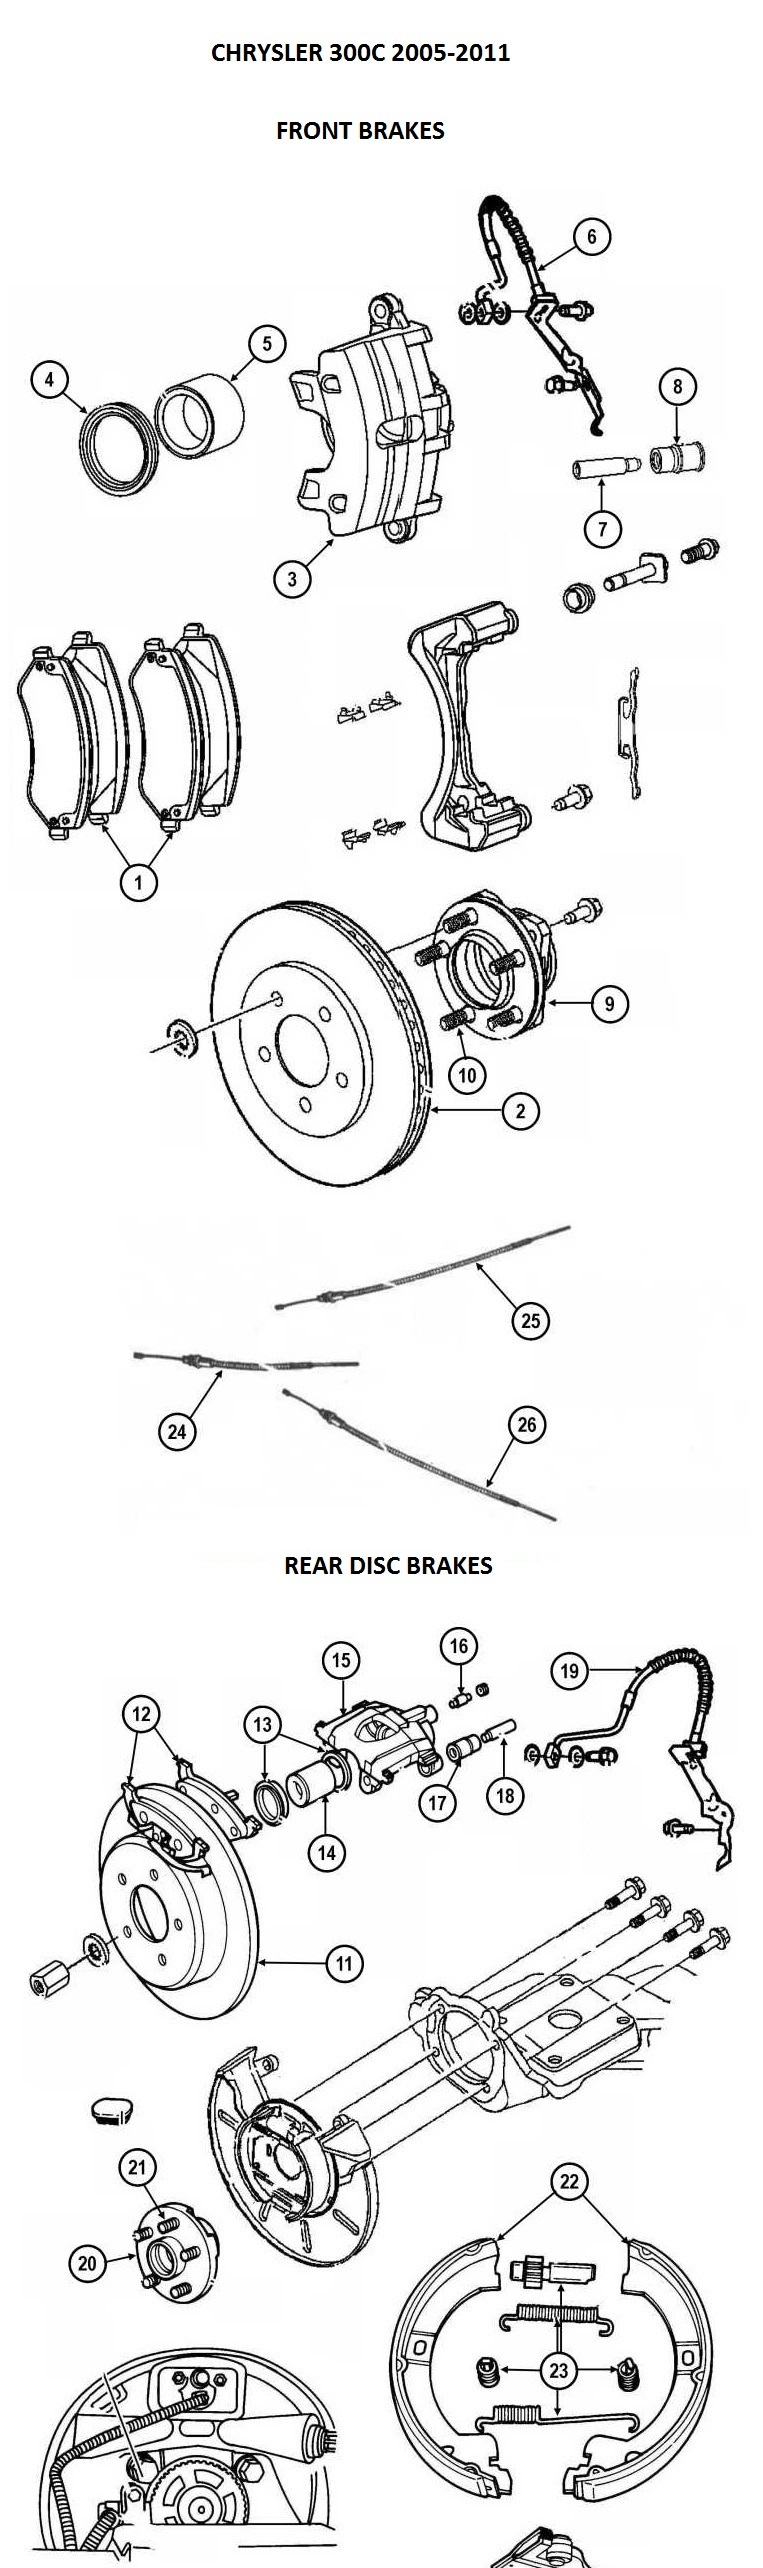 Engine Components Diagram For 1996 Plymouth Breeze 20 L4 Gas